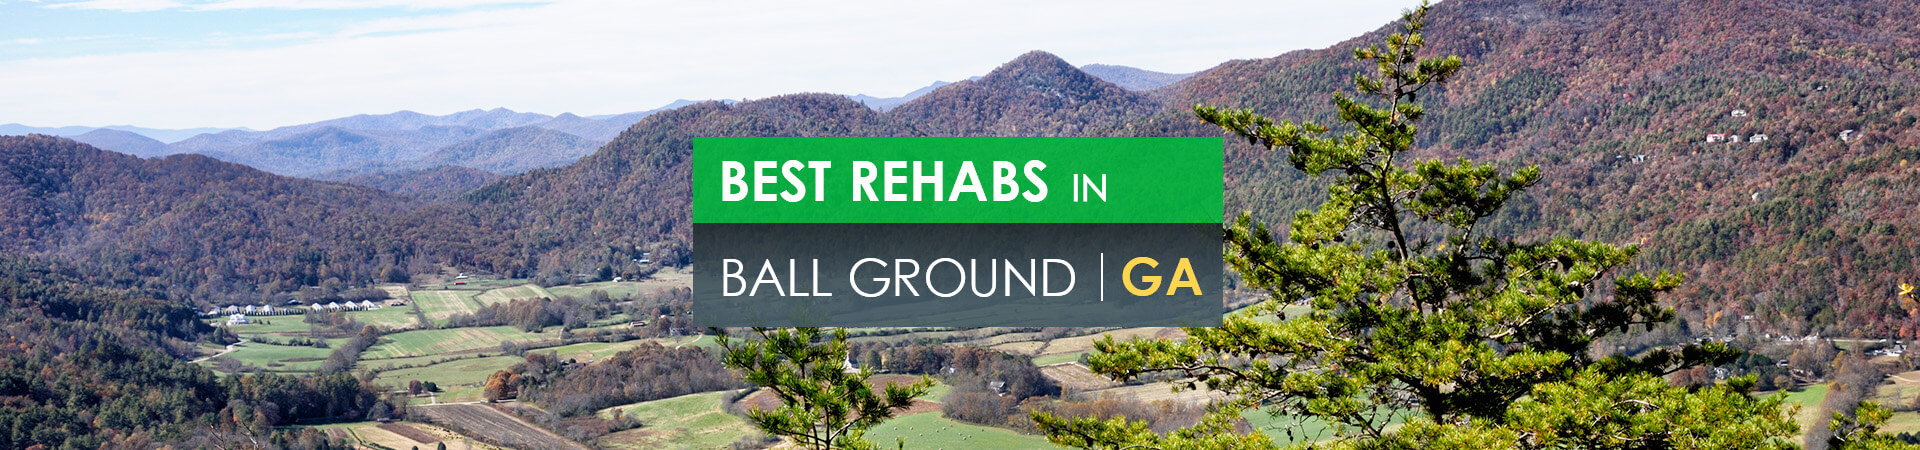 Best rehabs in Ball Ground, GA